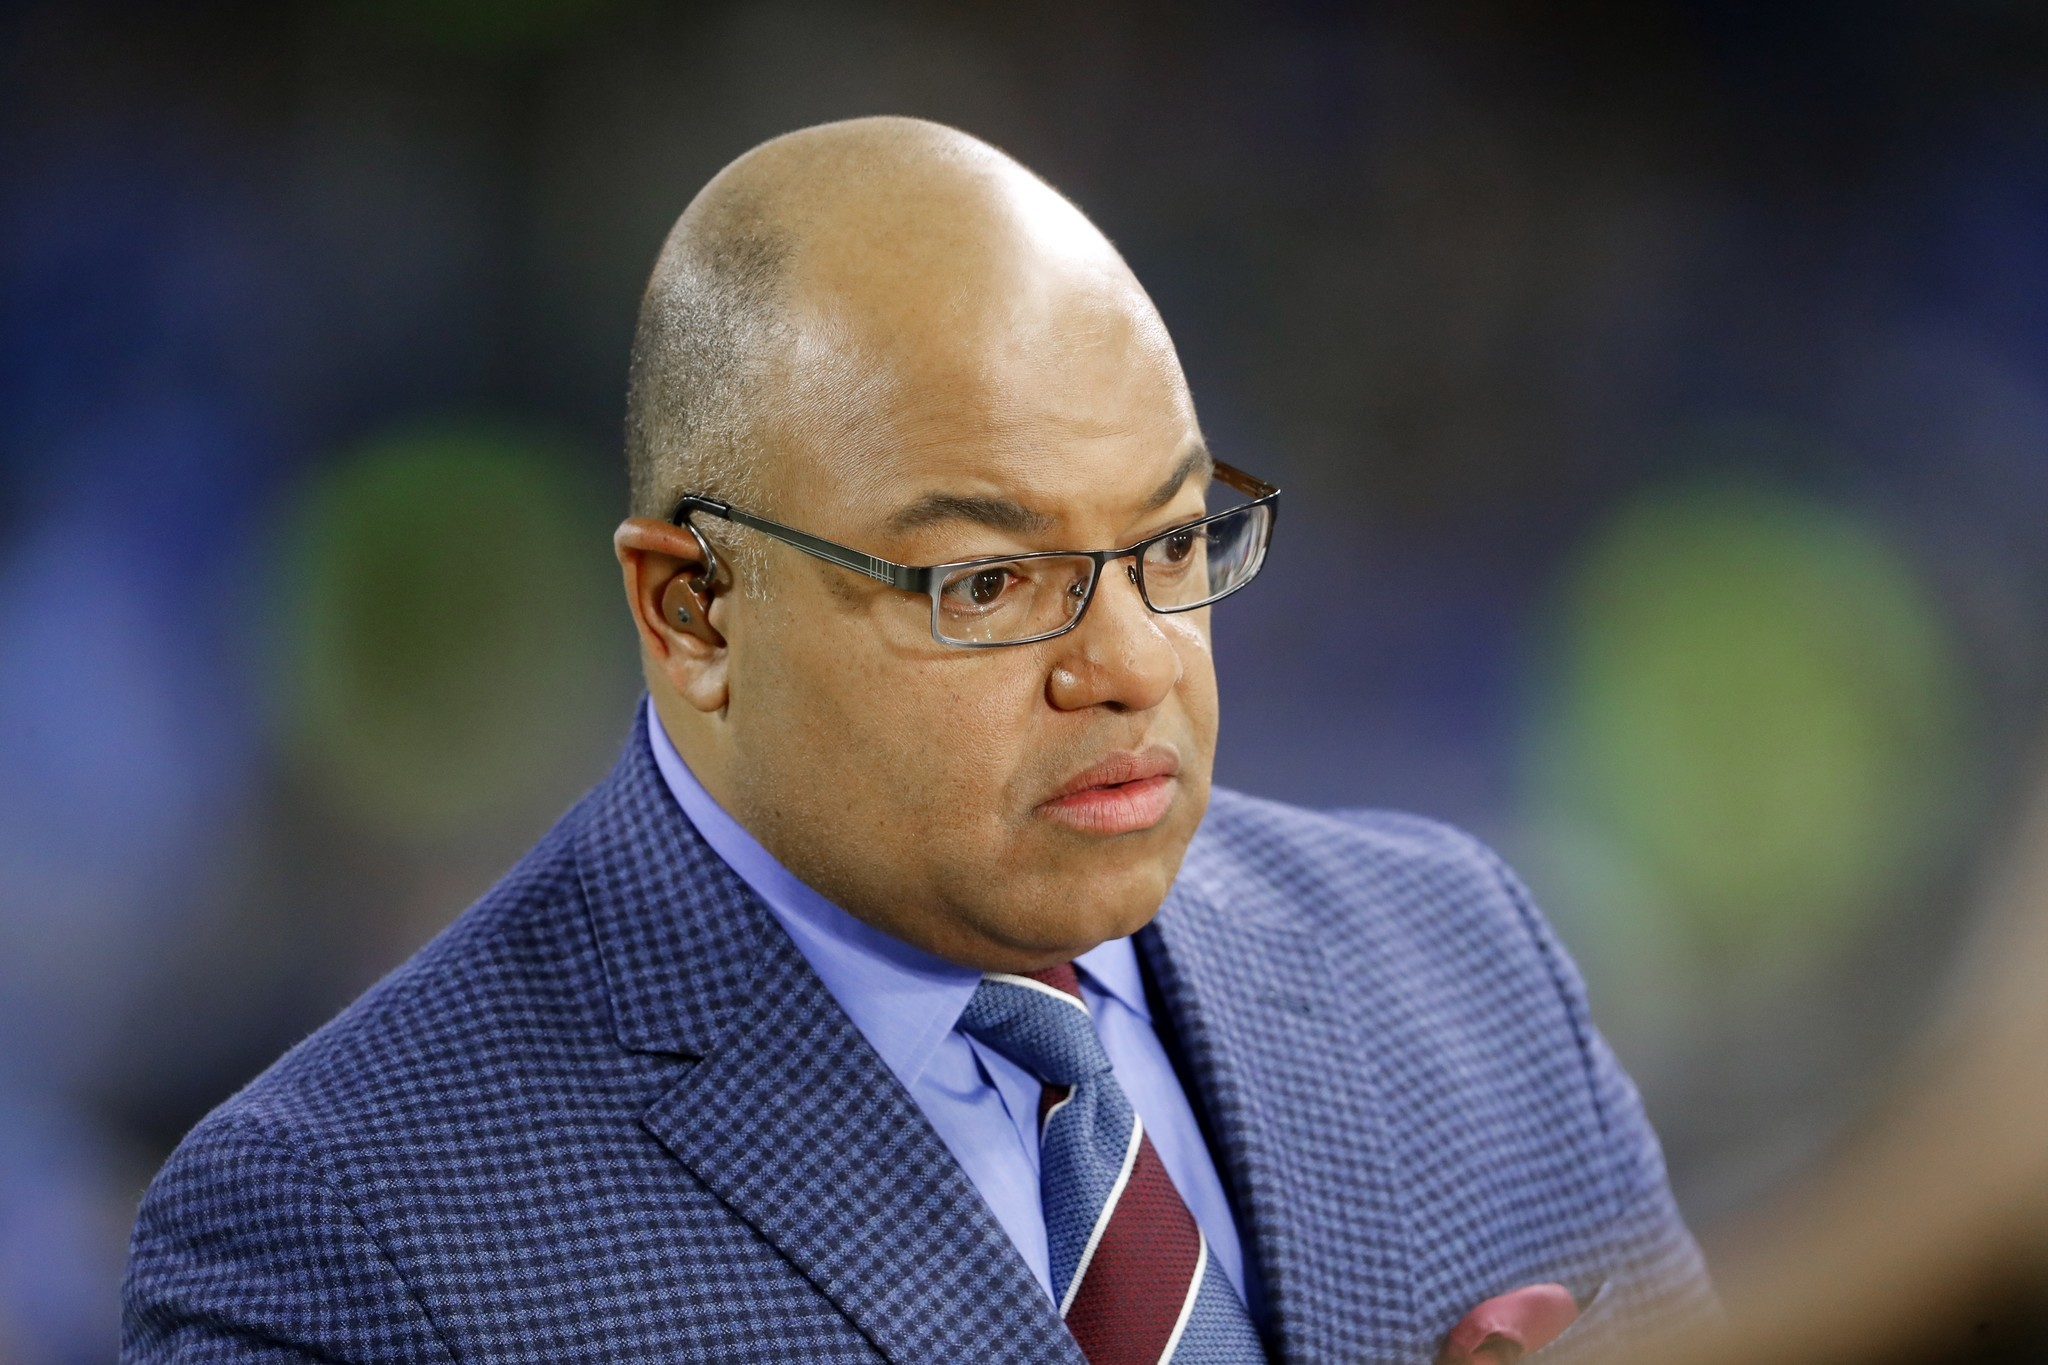 Why Mike Tirico's history of alleged sexual harassment hasn't led him to Matt Lauer's fate